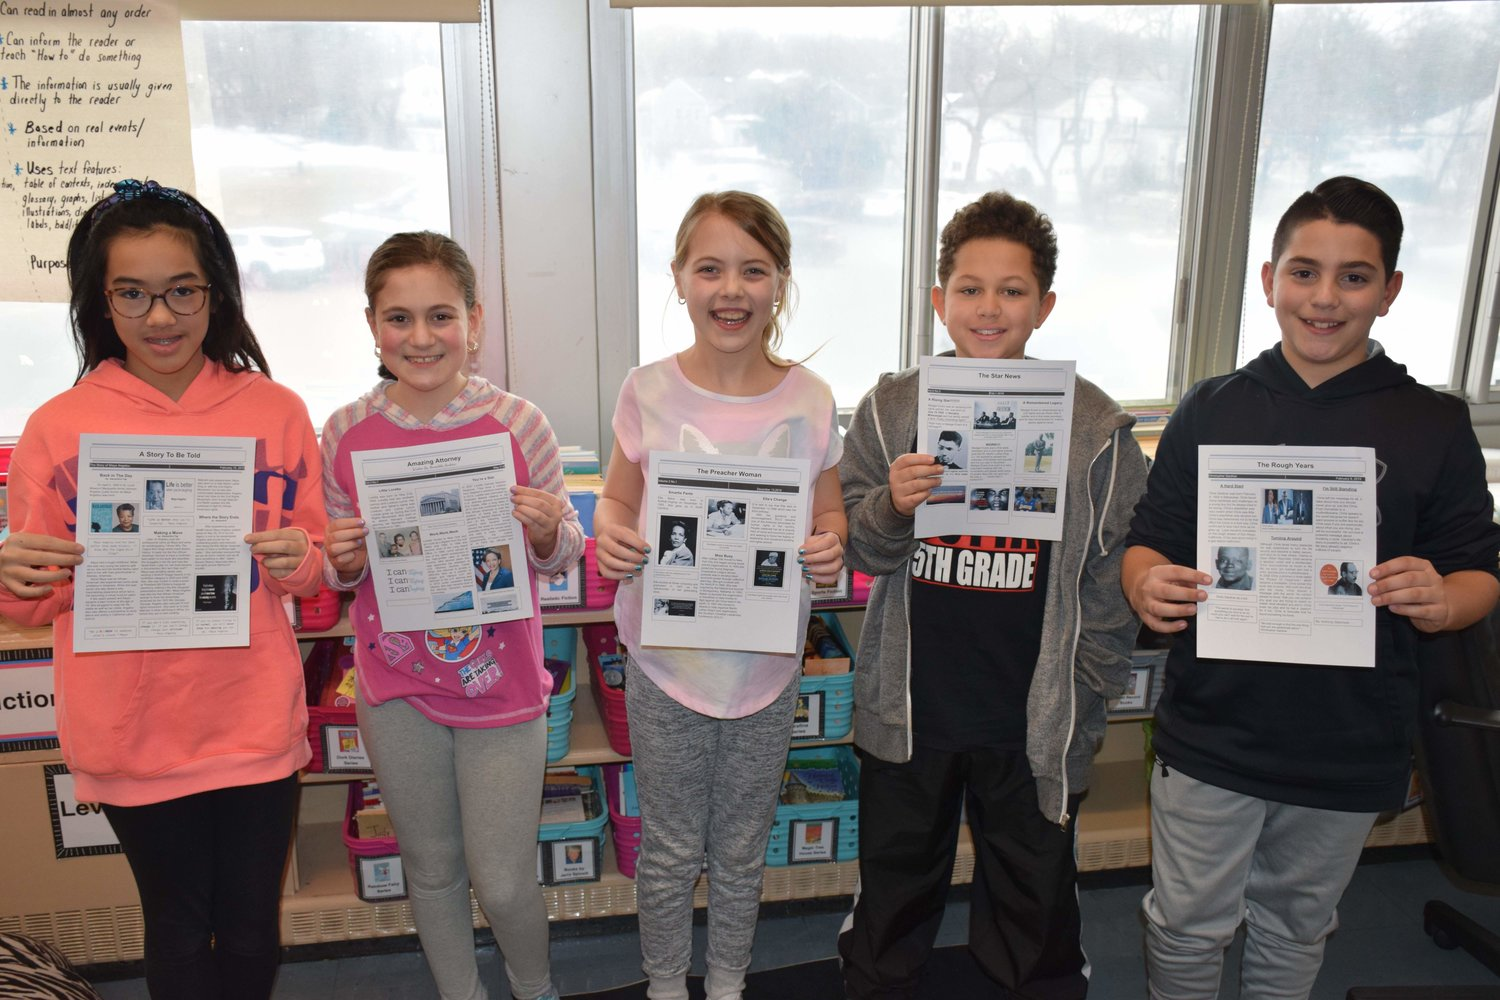 Fifth-grade students at Parkway Elementary School presented their Black History Month projects on March 6.